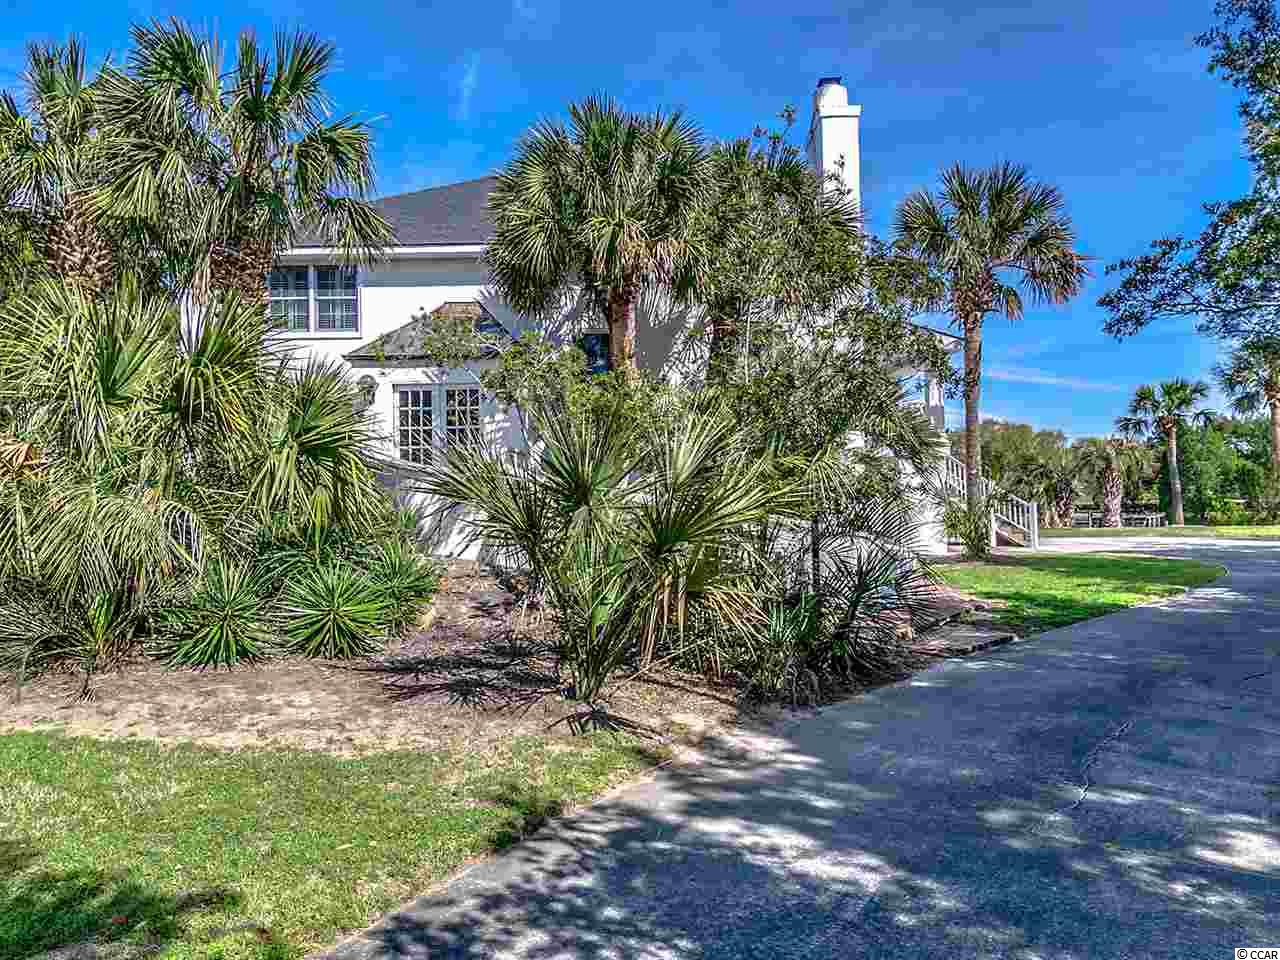 Private 5 bedroom, 3 bath home with a great family feel on the canal and a block from the beach. This home features open living/dining room, wood burning fireplace, downstairs den/game room with both screened and open porches. There is a crabbing dock on the canal, an outside shower and plenty of storage space for all of your beach toys. DeBordieu Colony is a very private, oceanfront gated community located near Pawleys Island, South Carolina on the coast between Charleston and Myrtle Beach.